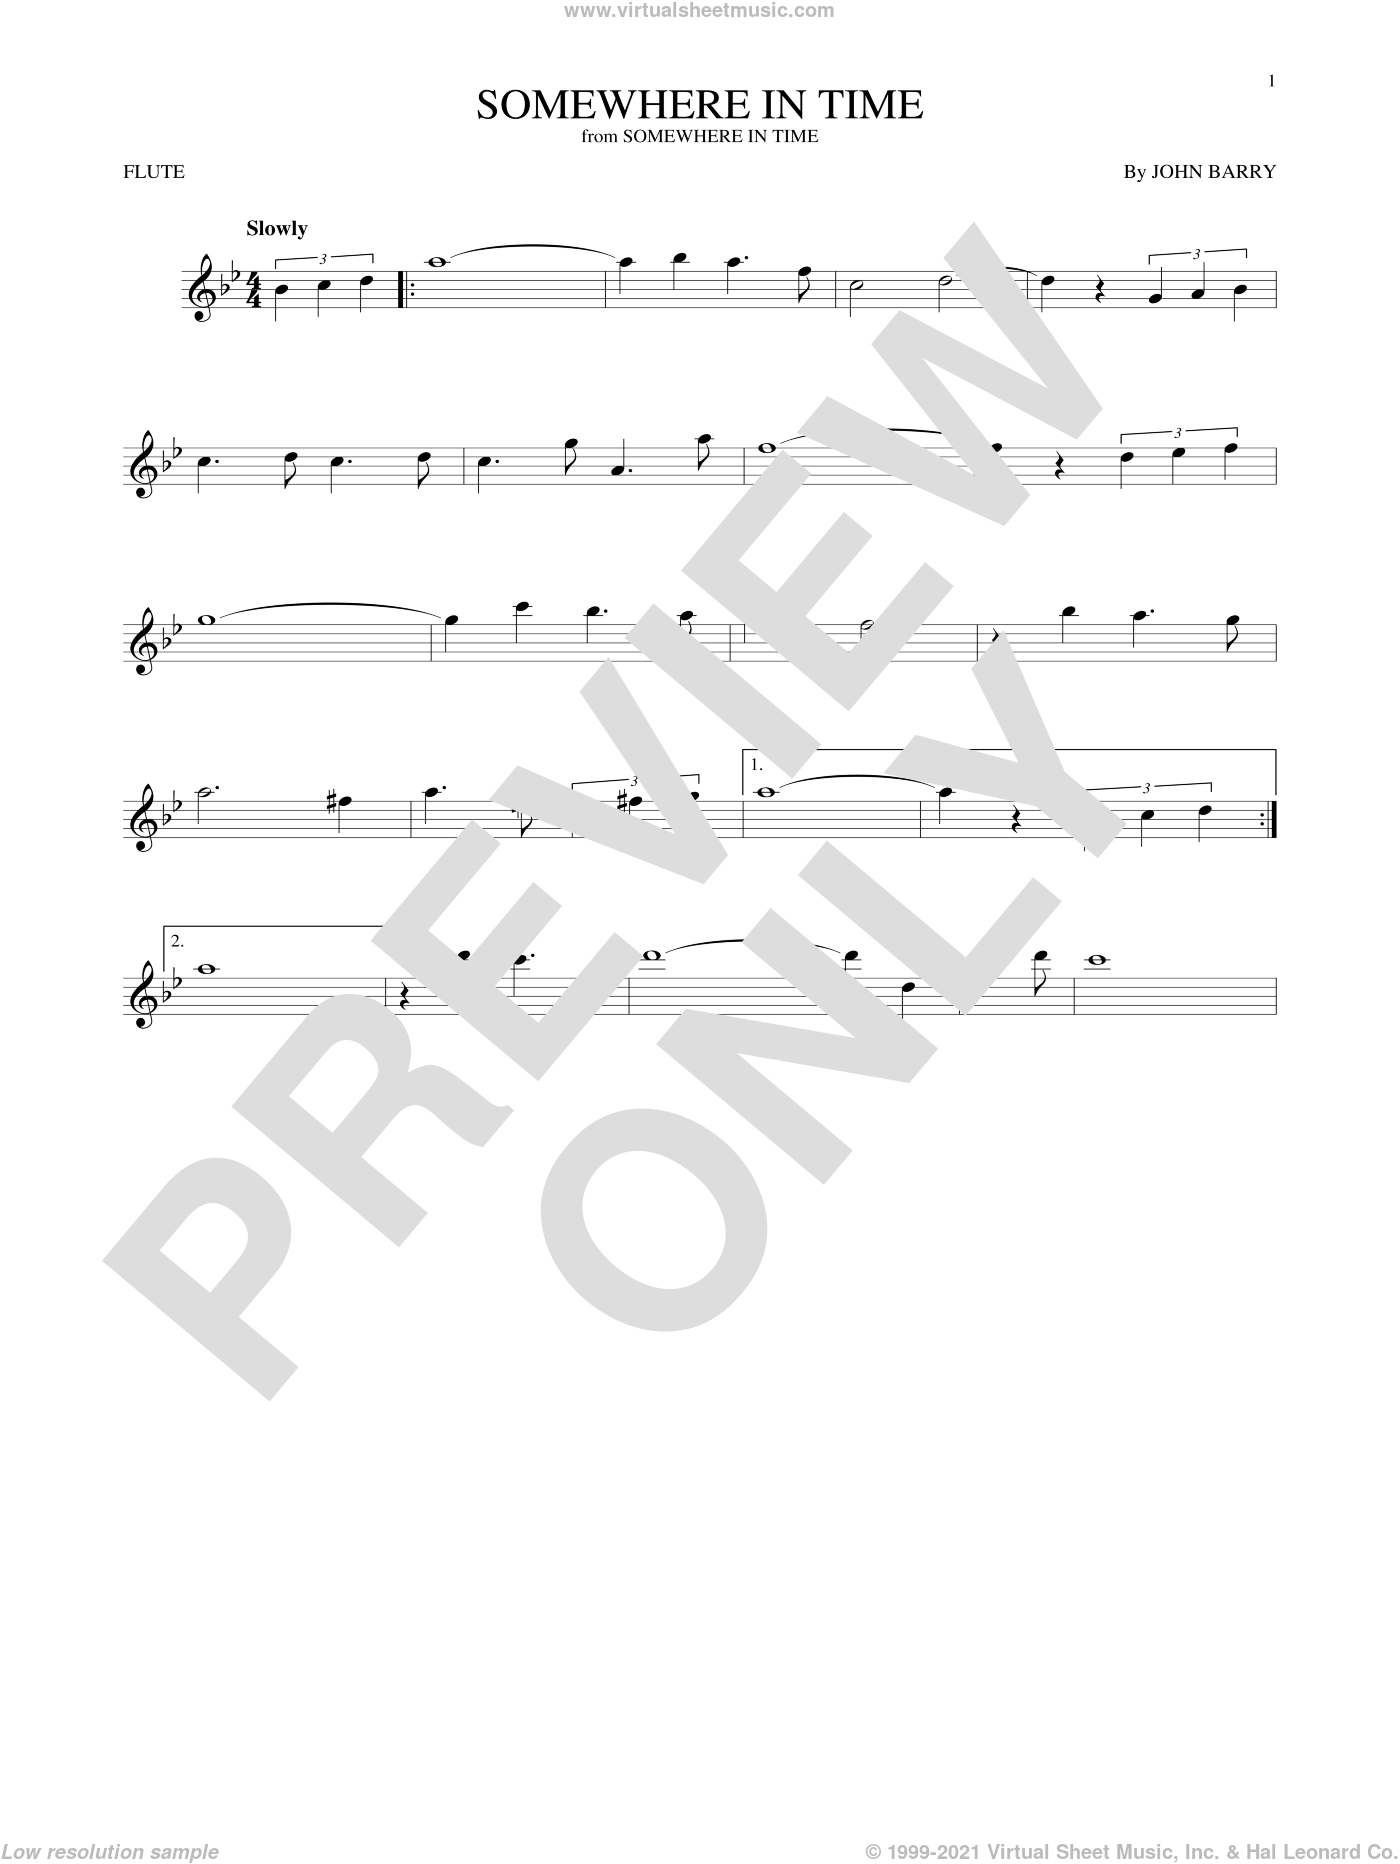 Somewhere In Time sheet music for flute solo by John Barry and B.A. Robertson, intermediate skill level